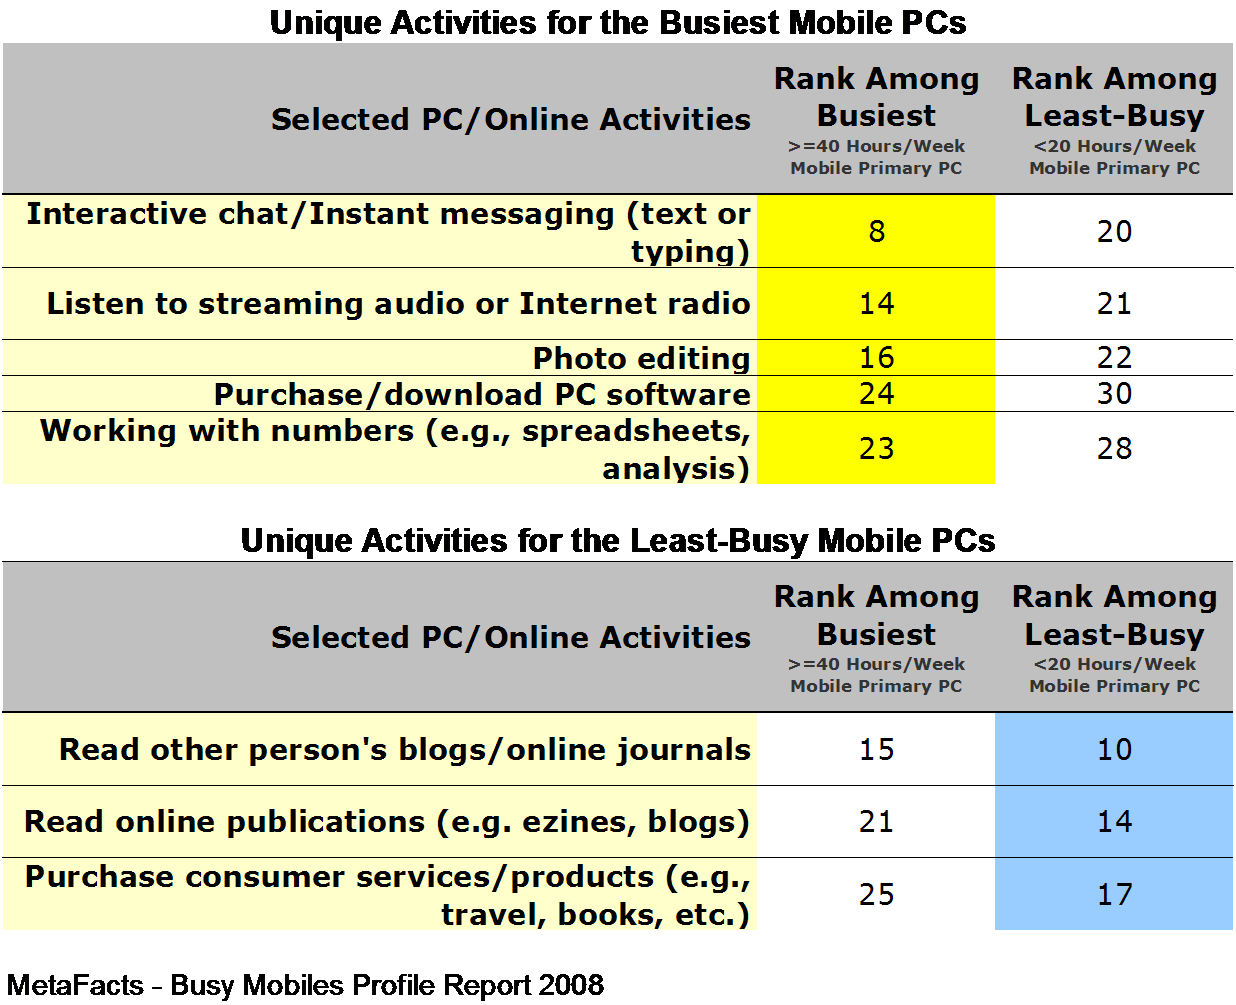 Unique Activities for the Busiest Mobiles - Busy Mobiles Profile Report